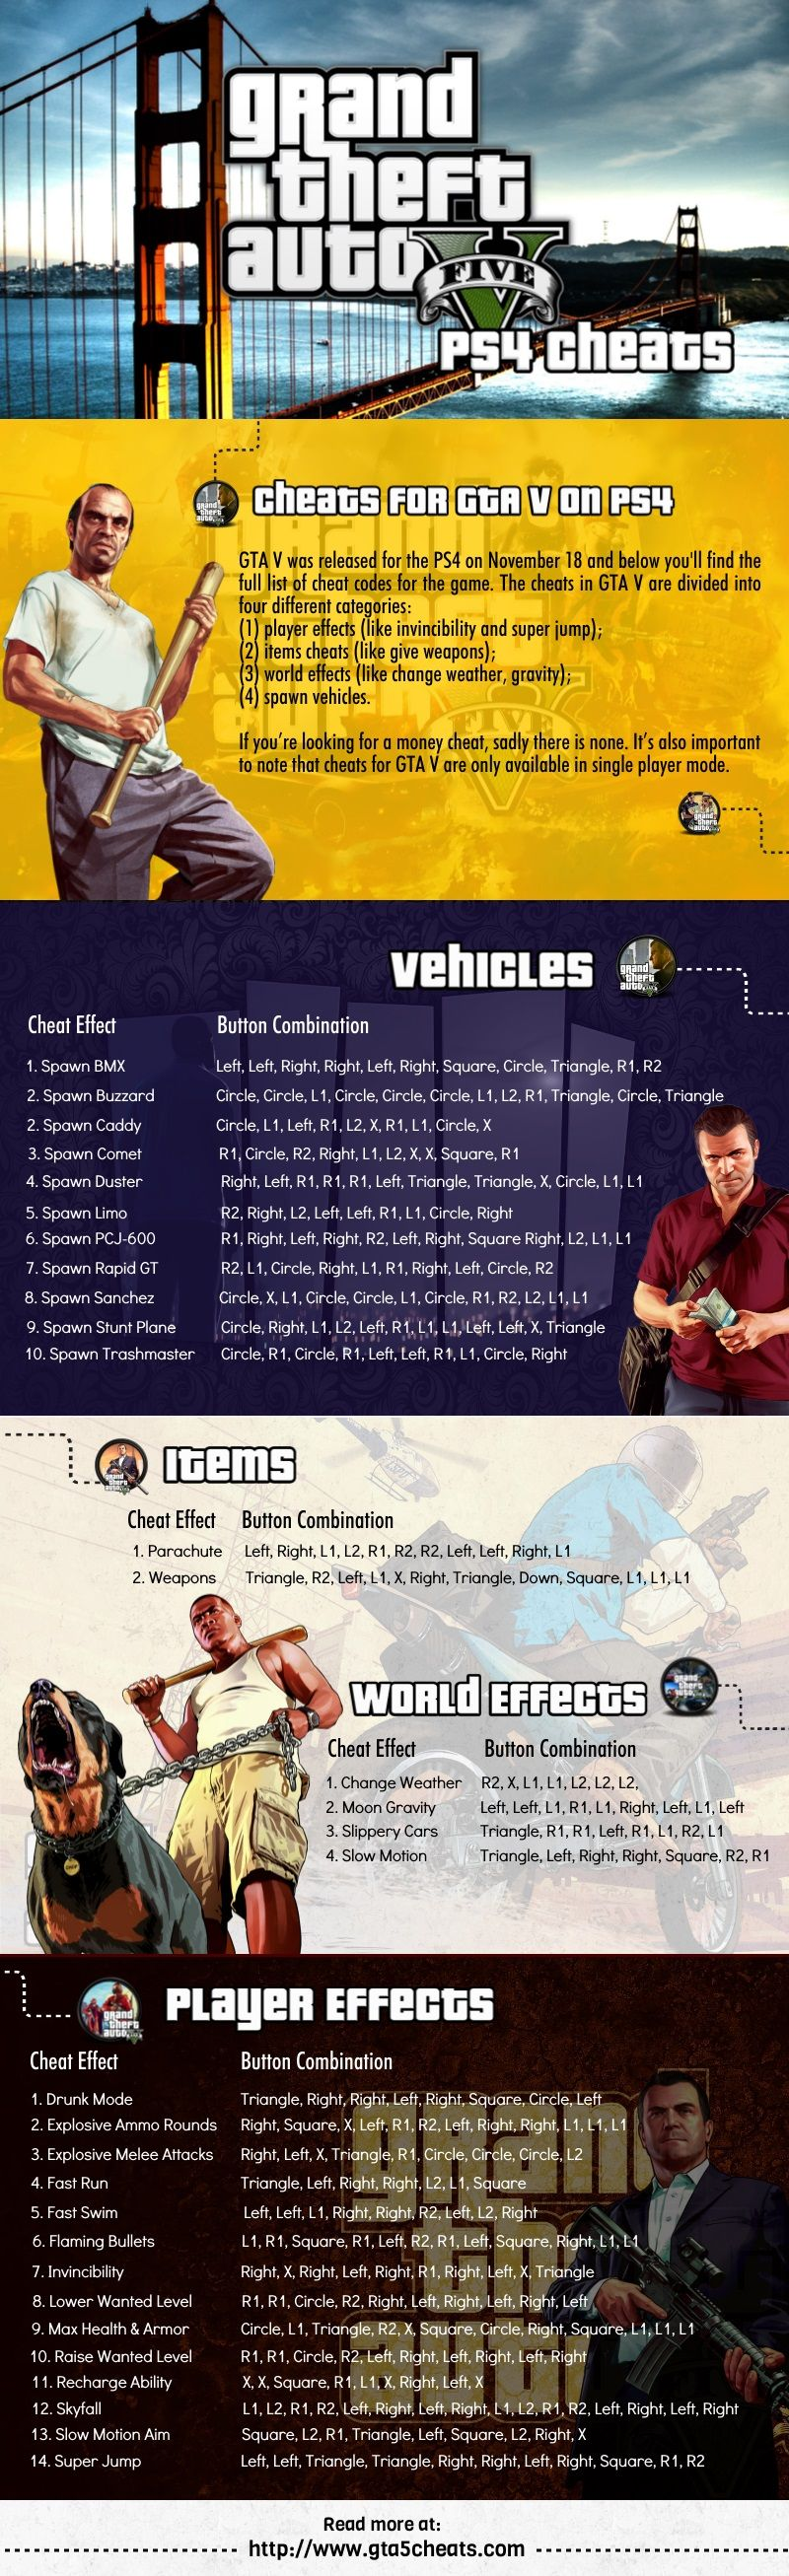 This Is The Full List Of Official Cheat Codes For Grand Theft Auto V Gta V On The -1669